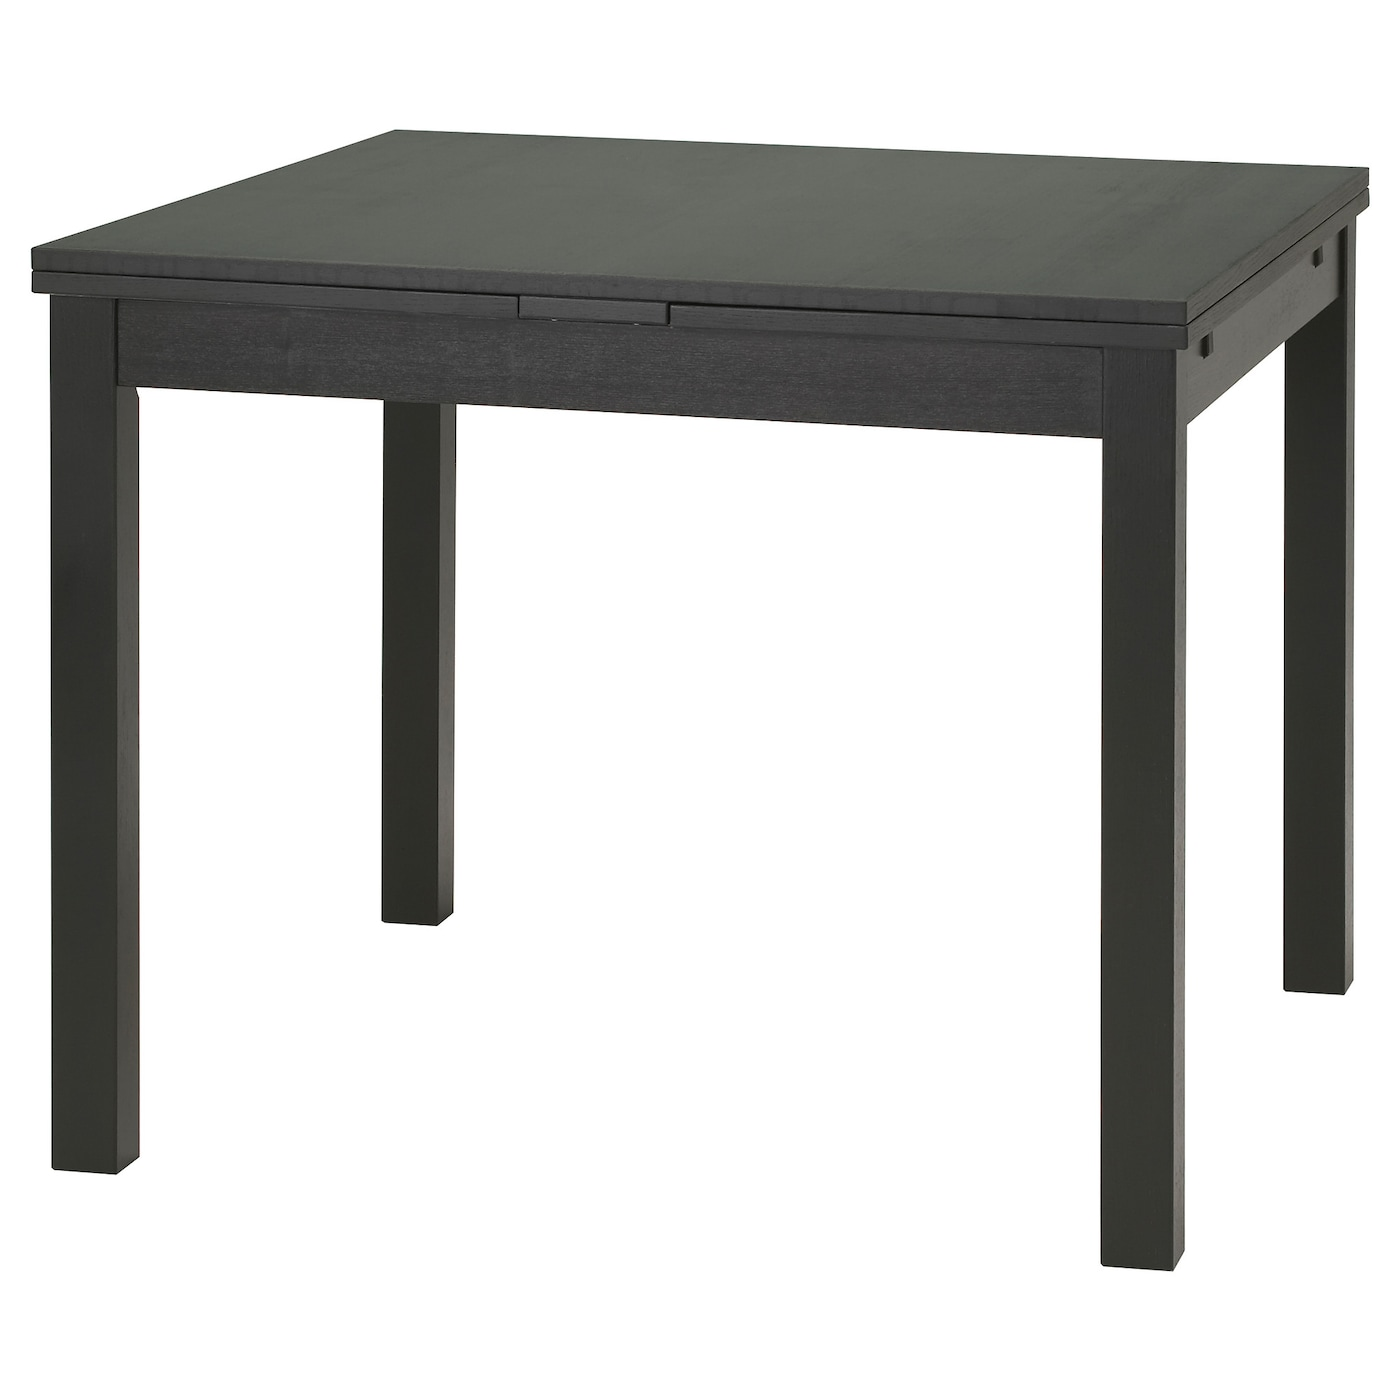 bjursta extendable table brown black 90 129 168x90 cm ikea